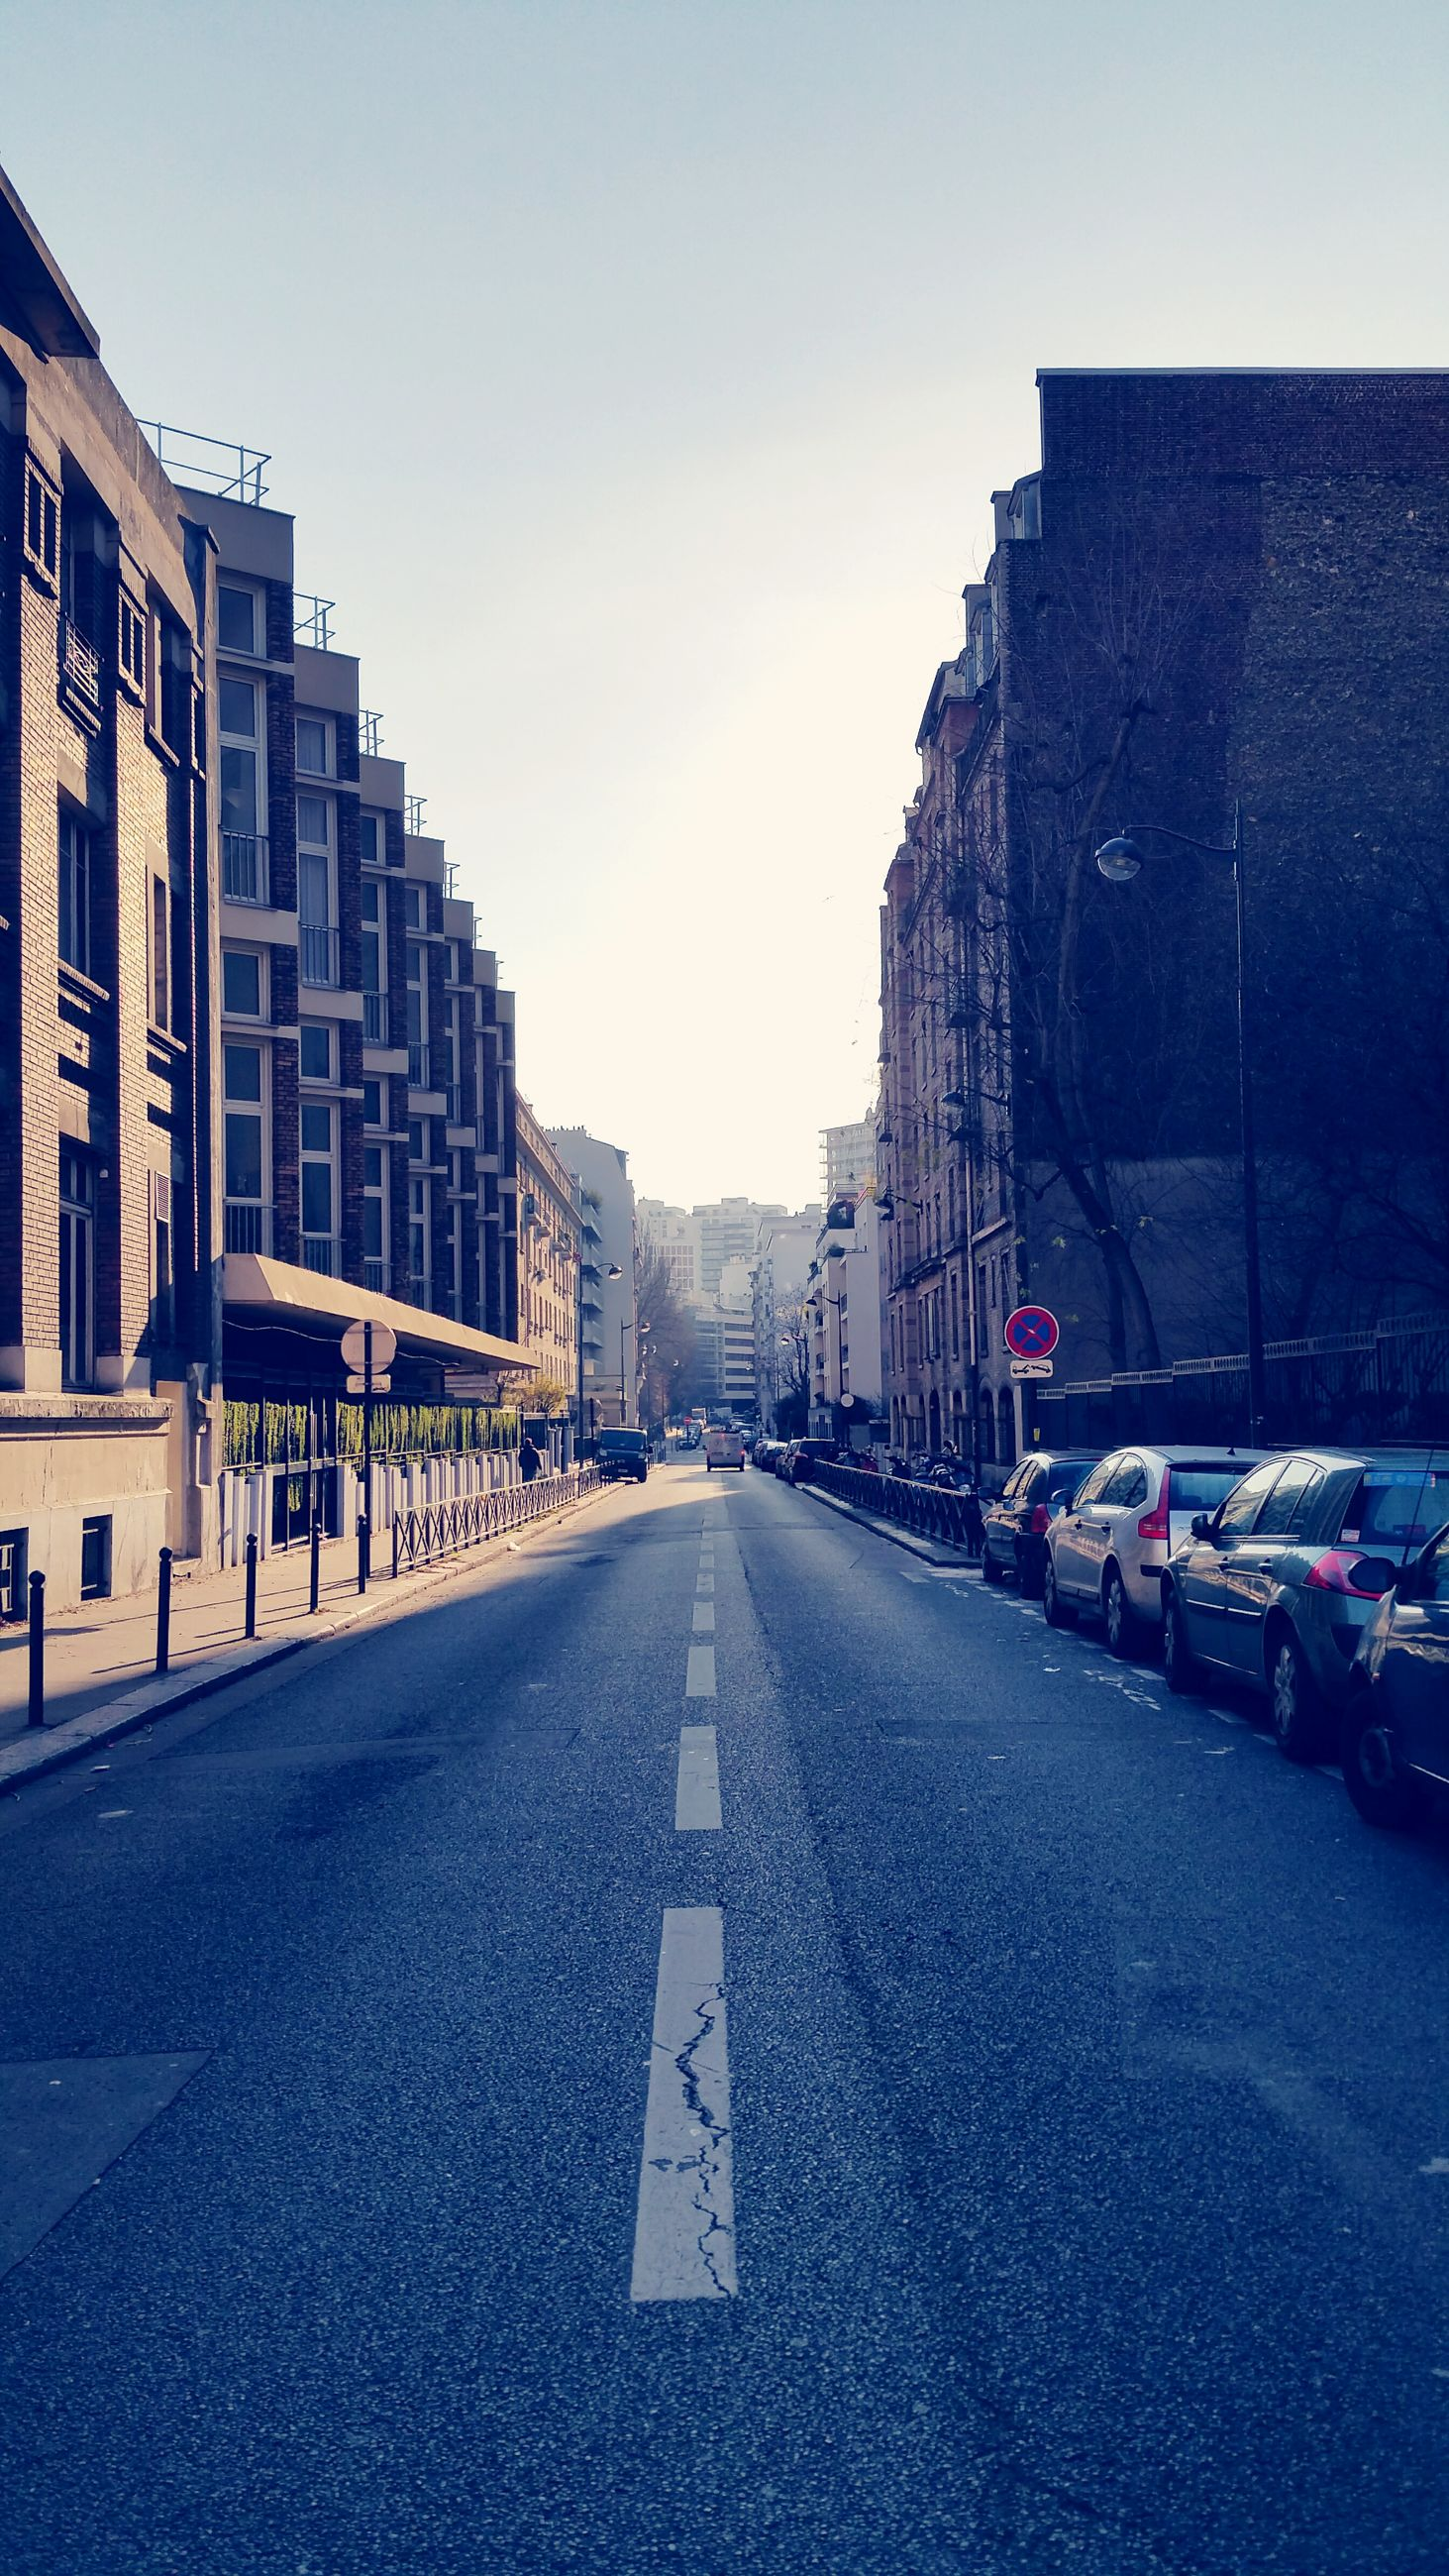 building exterior, architecture, the way forward, built structure, transportation, street, city, road, diminishing perspective, road marking, car, vanishing point, clear sky, land vehicle, city street, building, mode of transport, city life, asphalt, empty